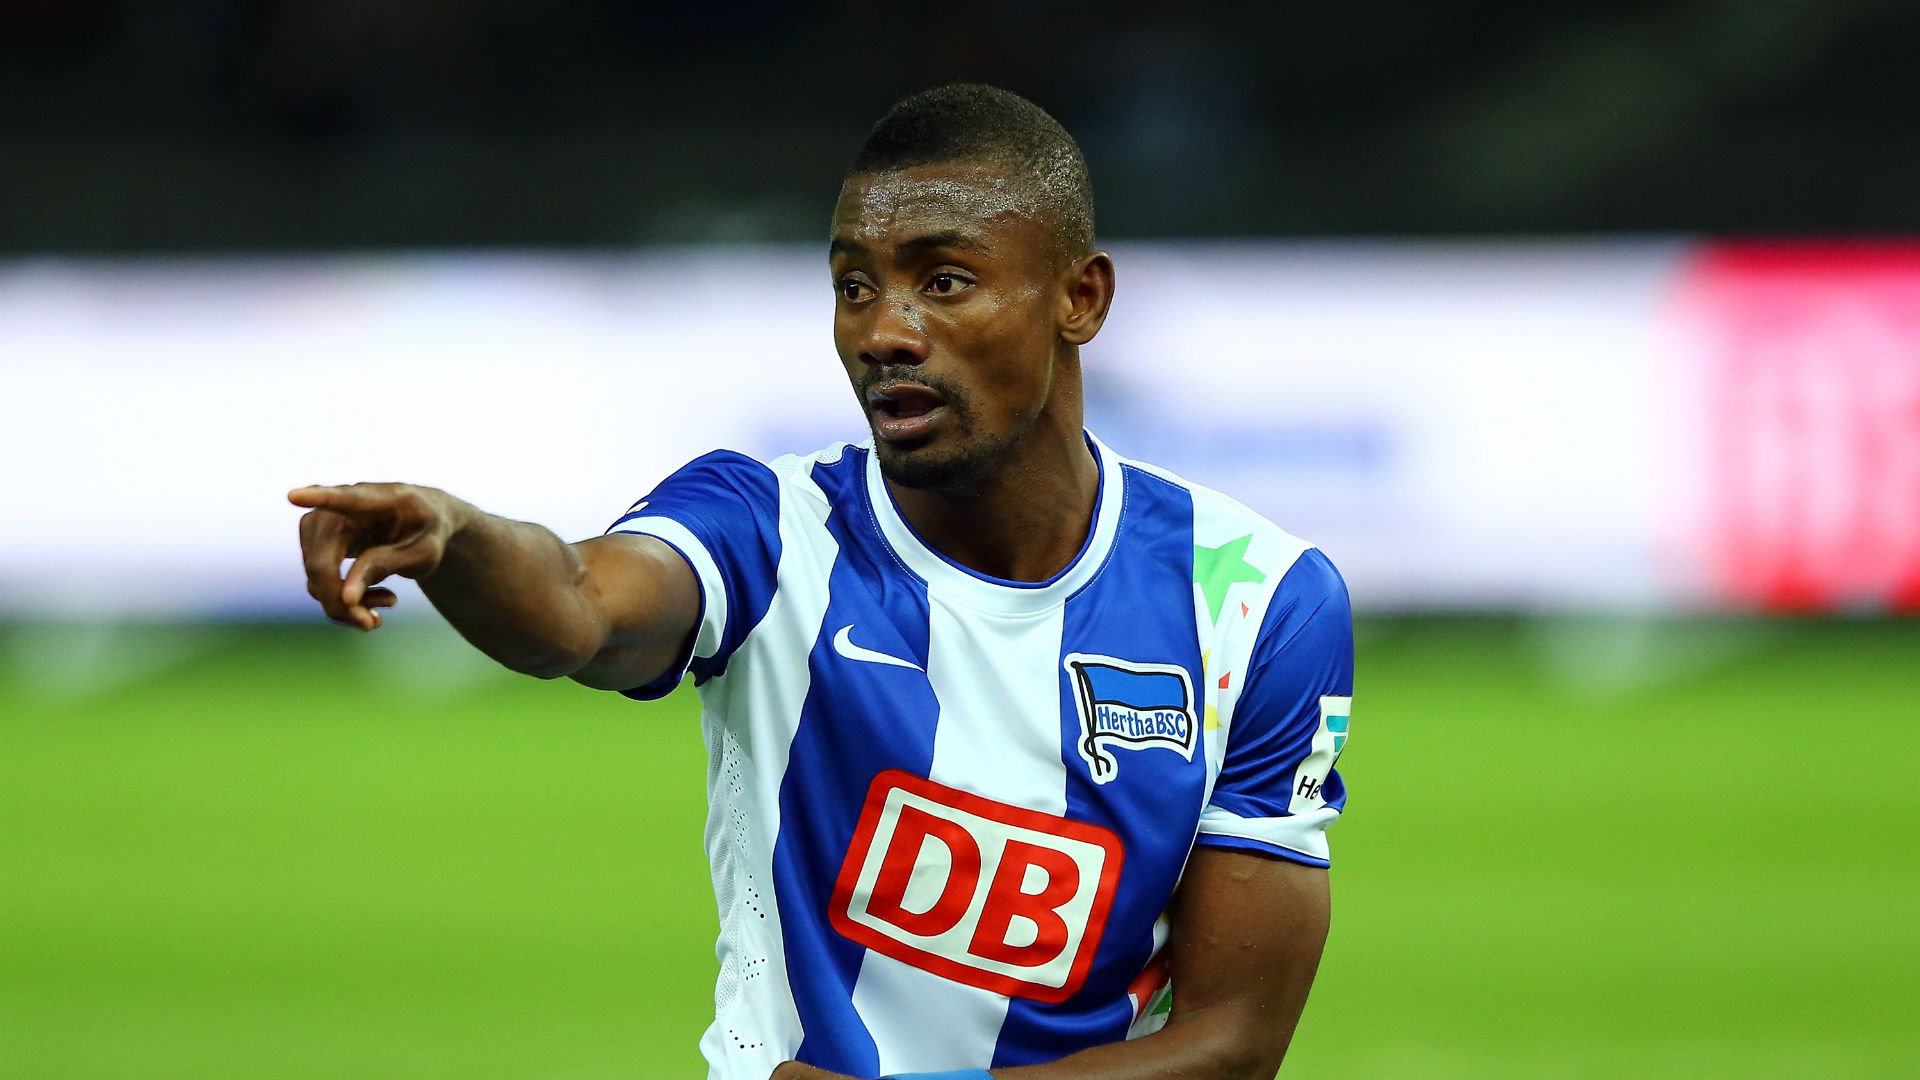 Kalou hits out at fine reports over Berlin Wall stunt